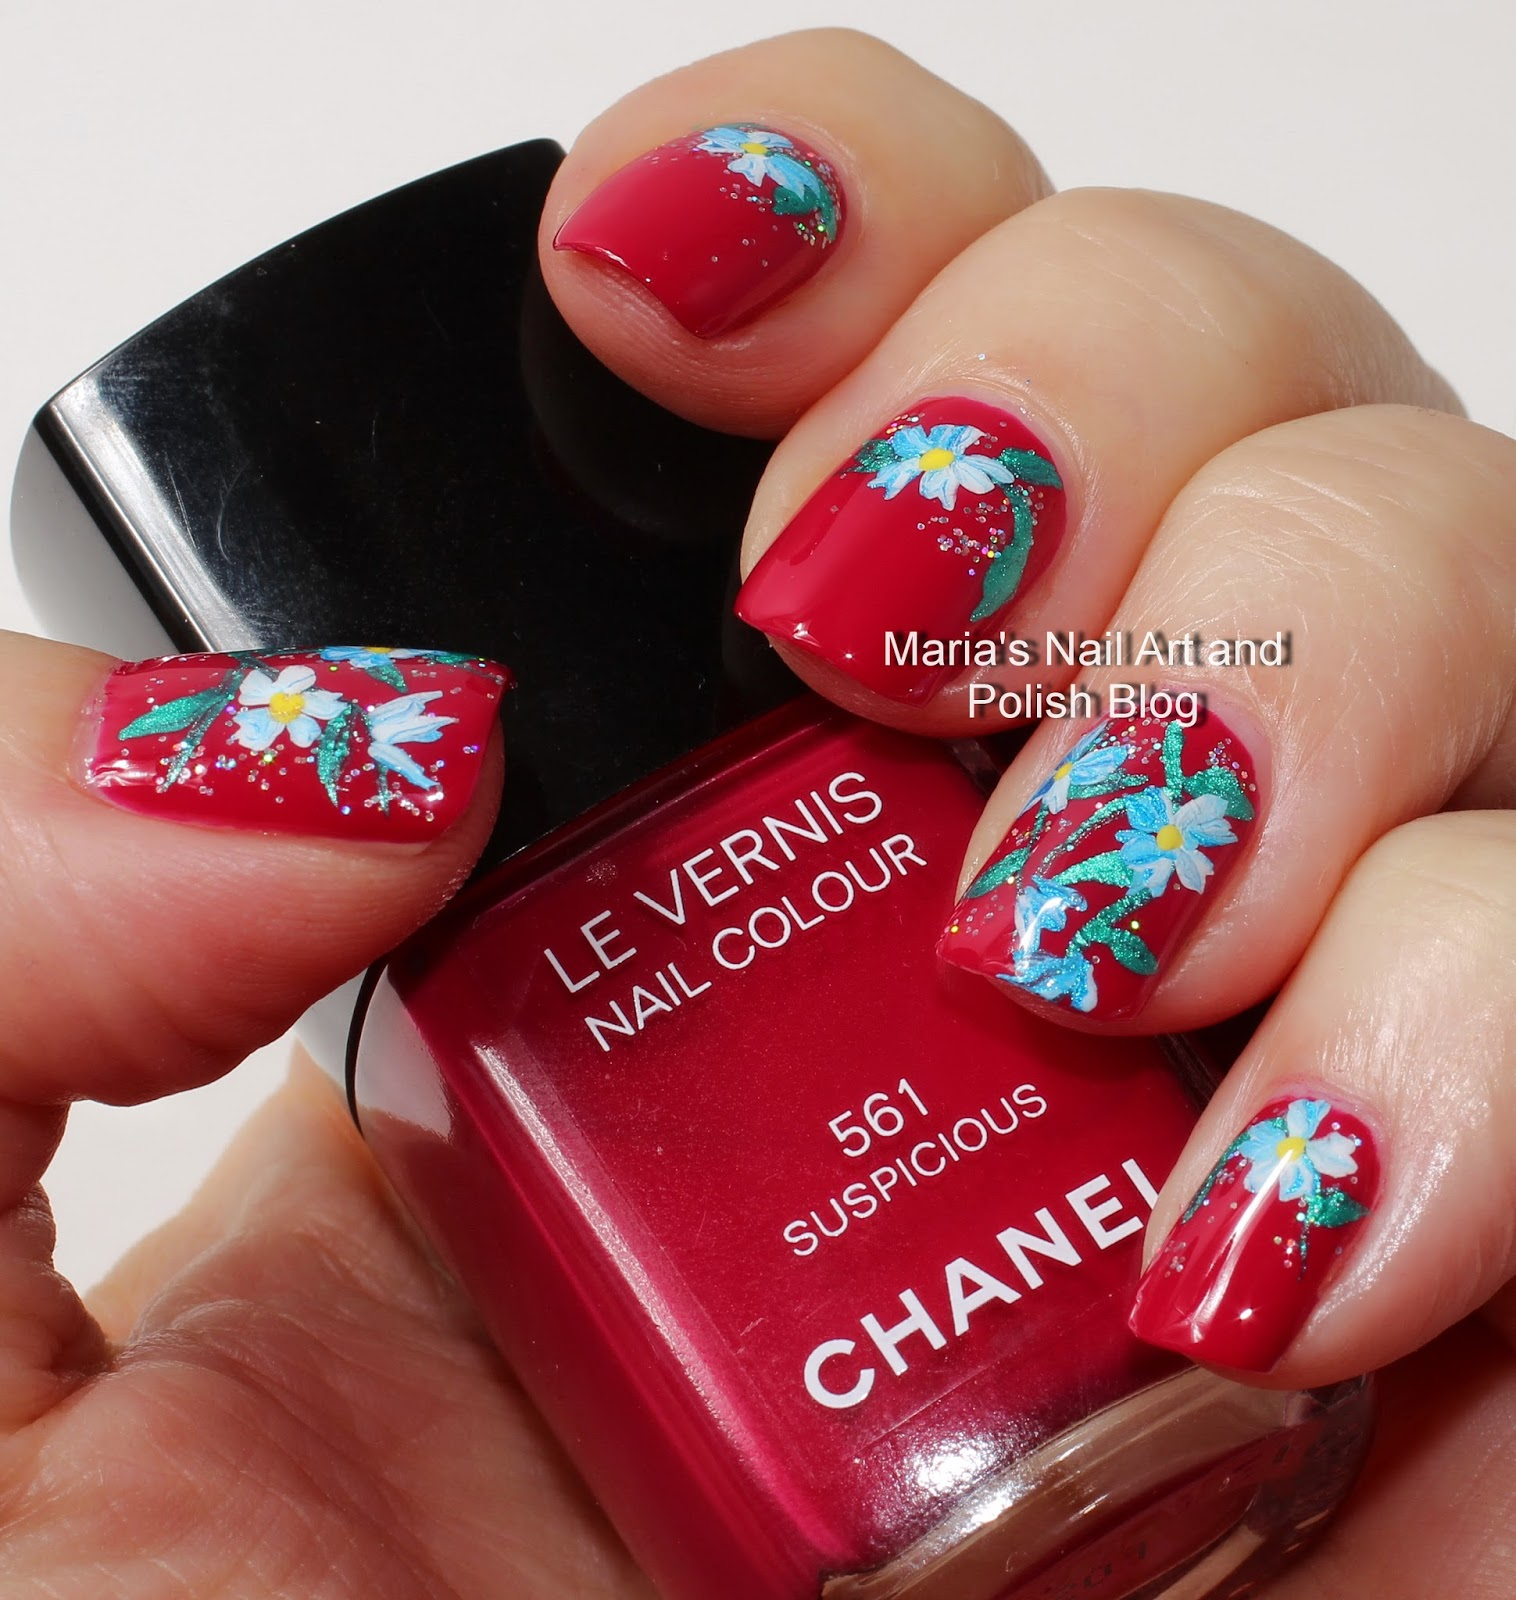 Marias Nail Art And Polish Blog Subtle Floral Nail Art On: Marias Nail Art And Polish Blog: Birthday Flowers And